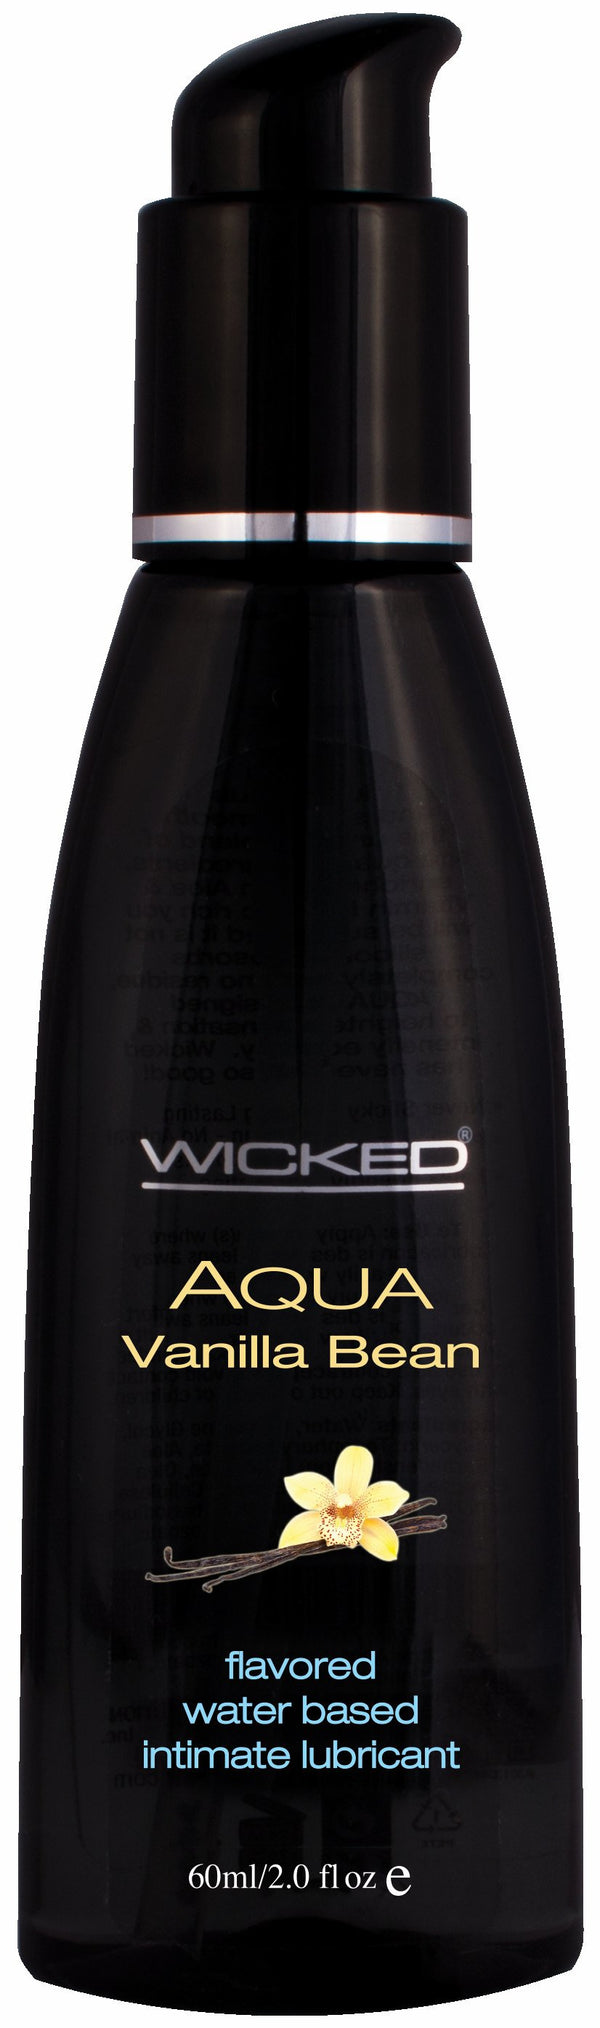 Wicked Aqua Vanilla Bean Intimate Lubricant 2 Oz